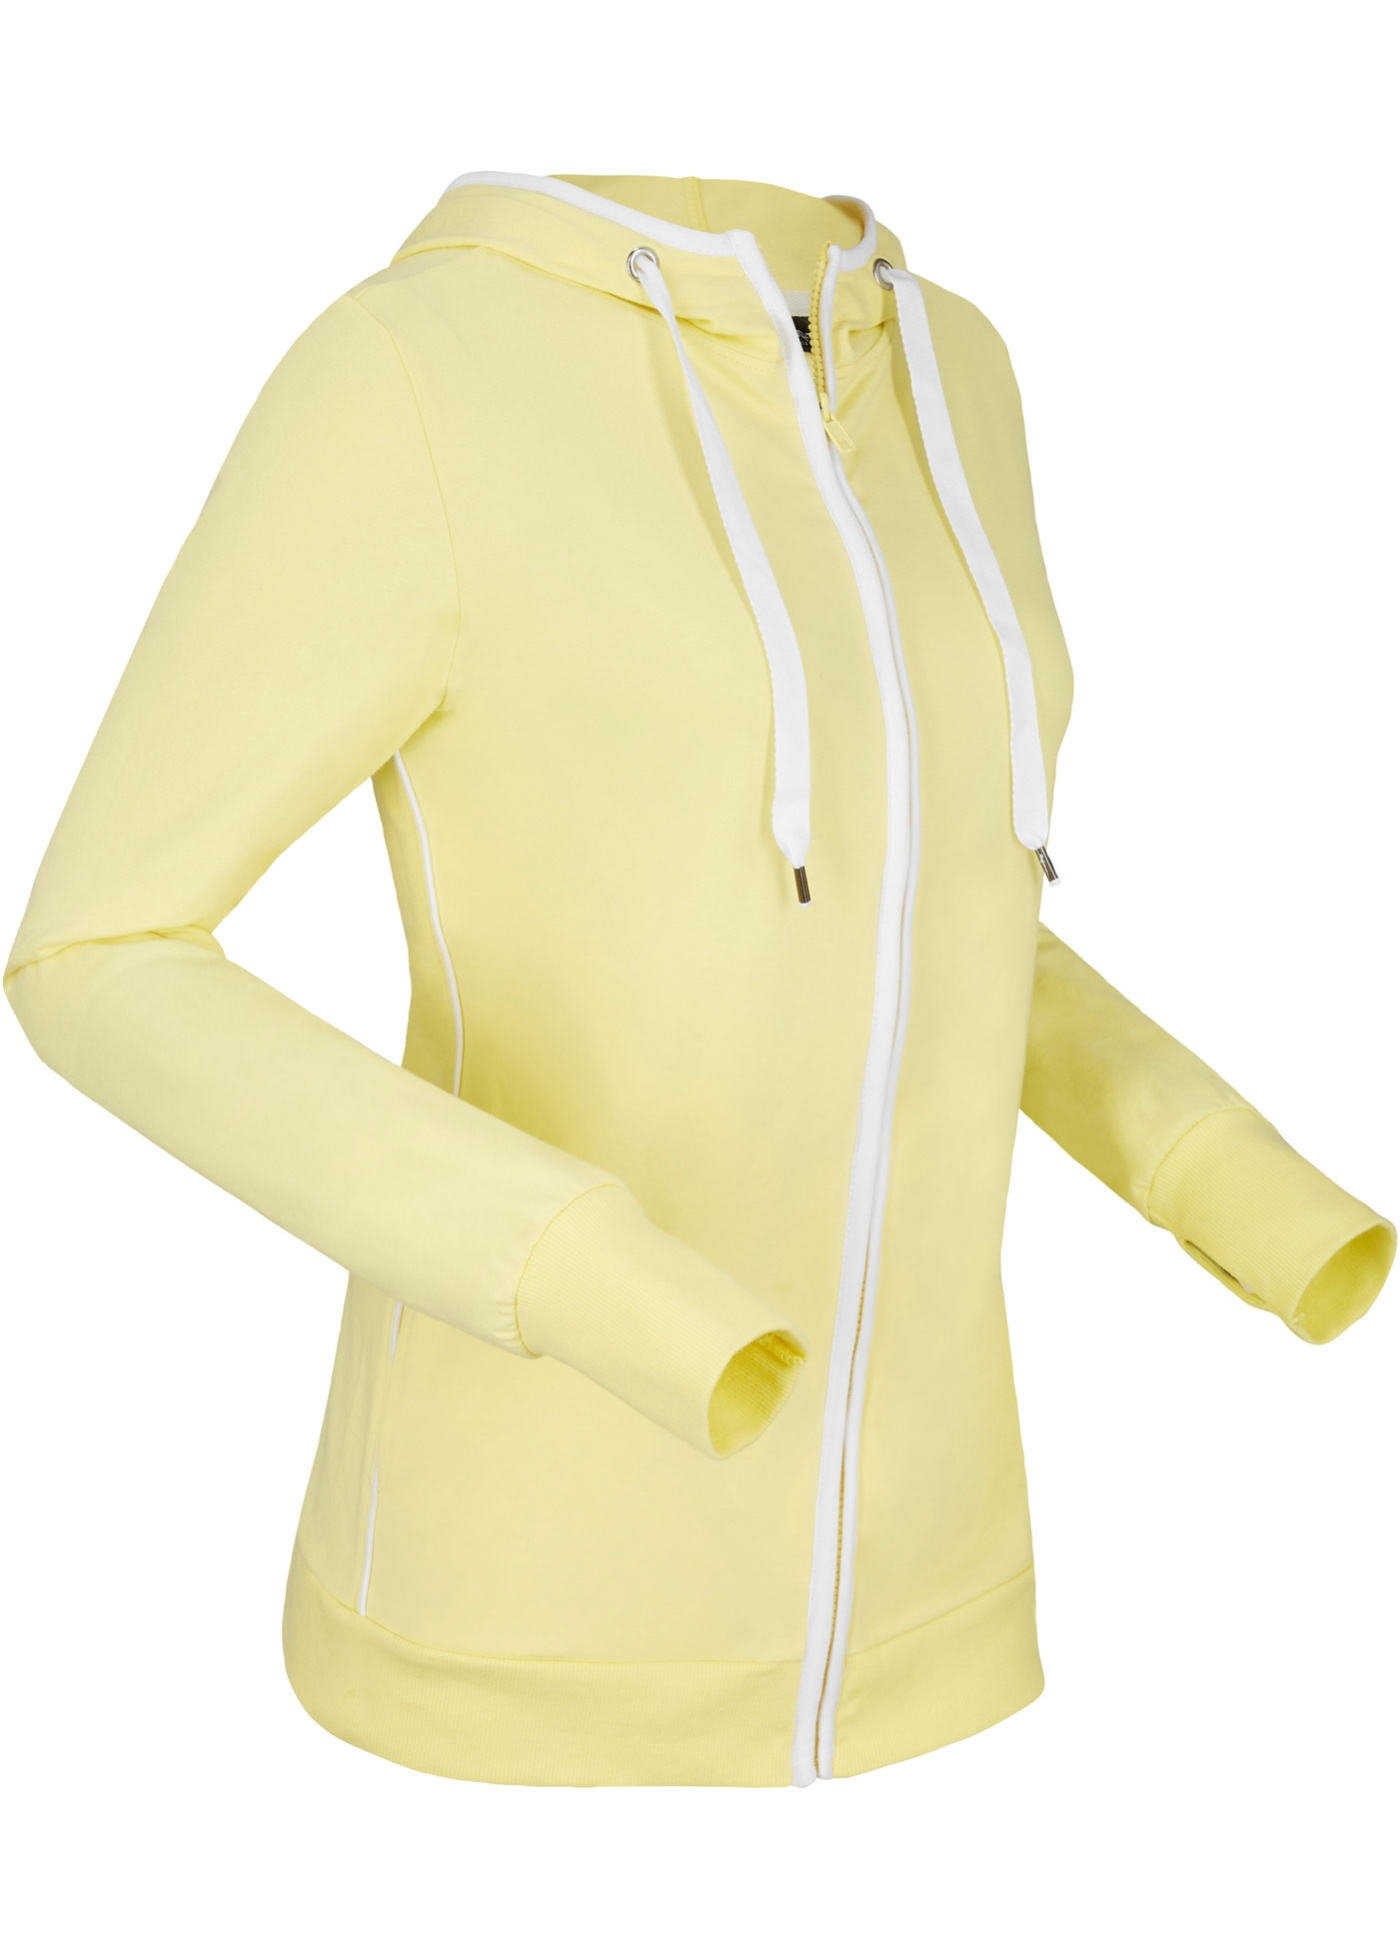 Felpa con zip e cappuccio (Giallo) - bpc bonprix collection